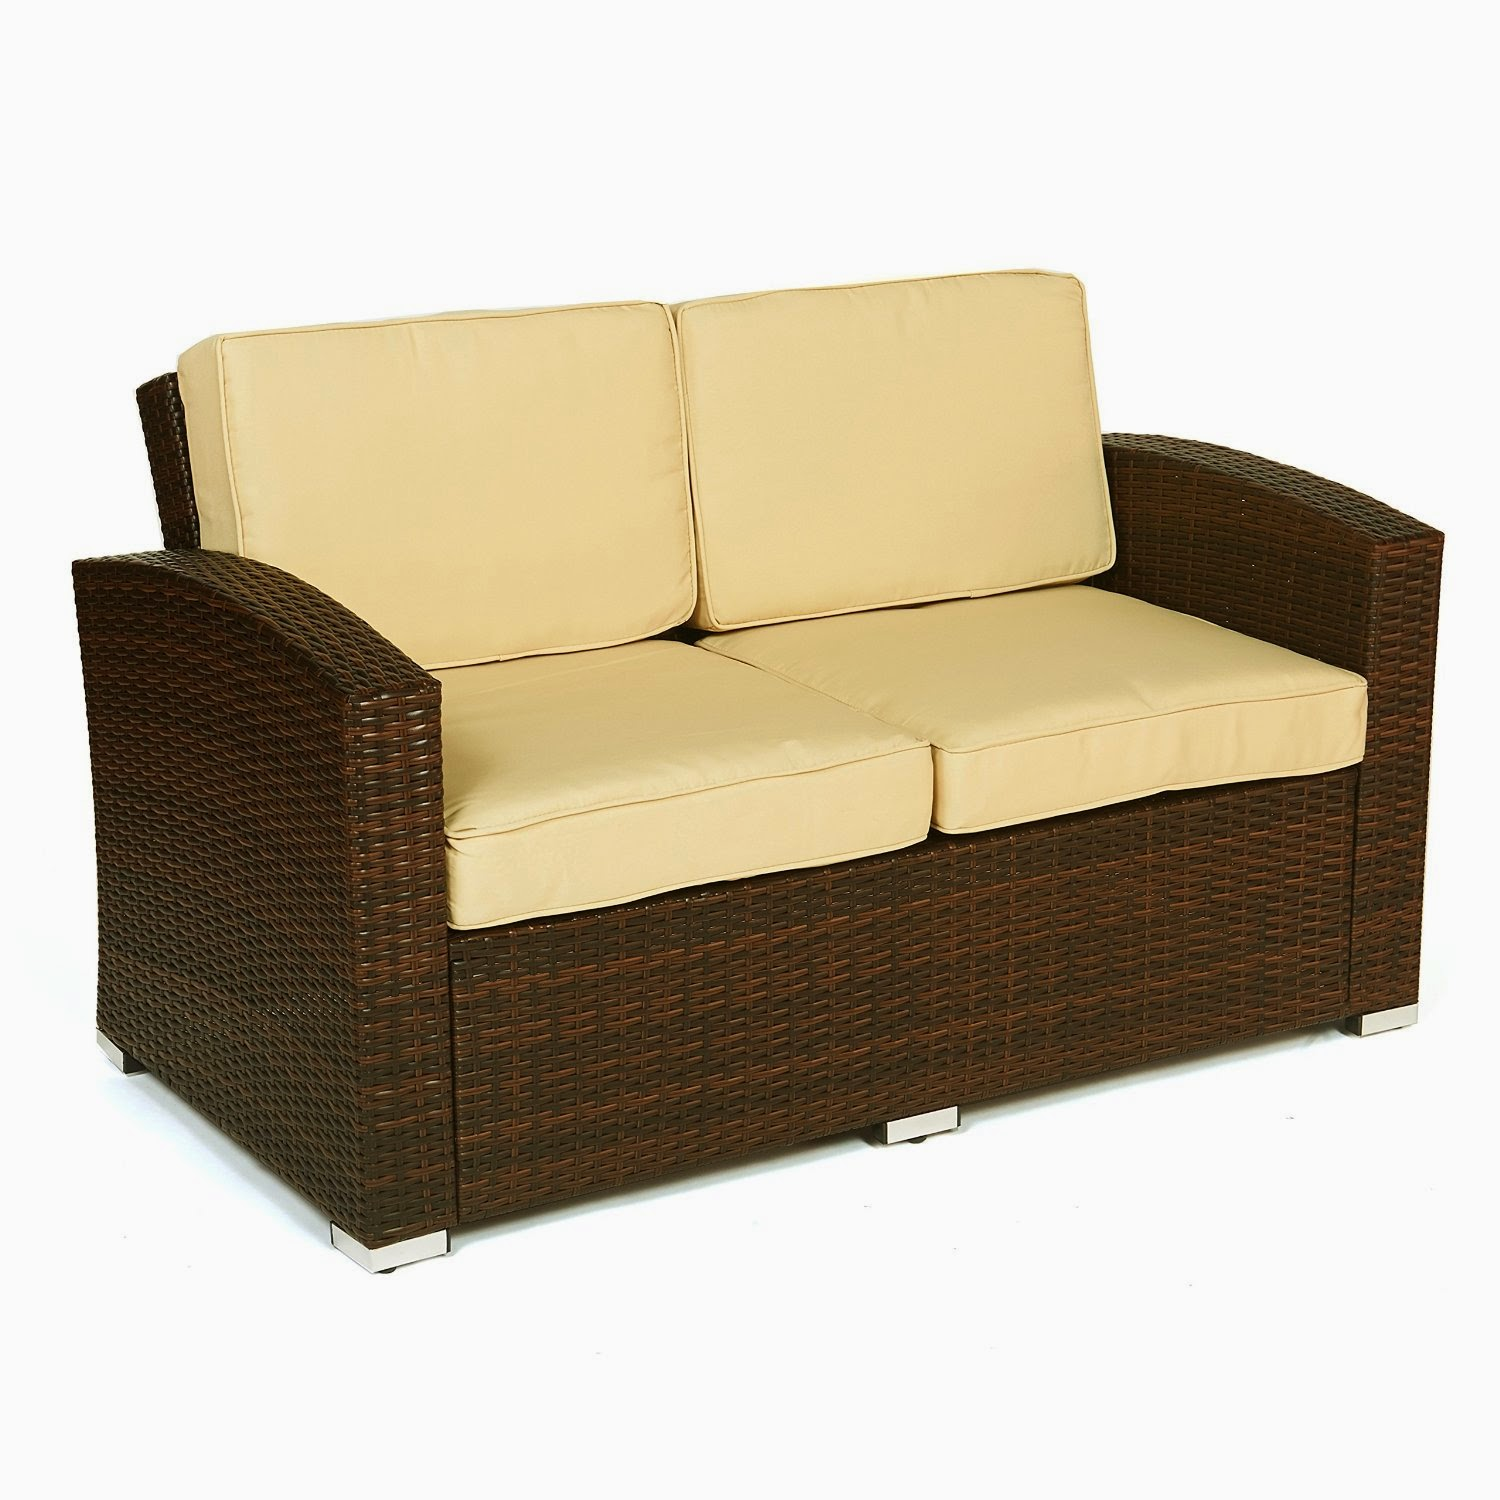 discount outdoor sofa set steve silver leather reviews special sale off 58 for furniture